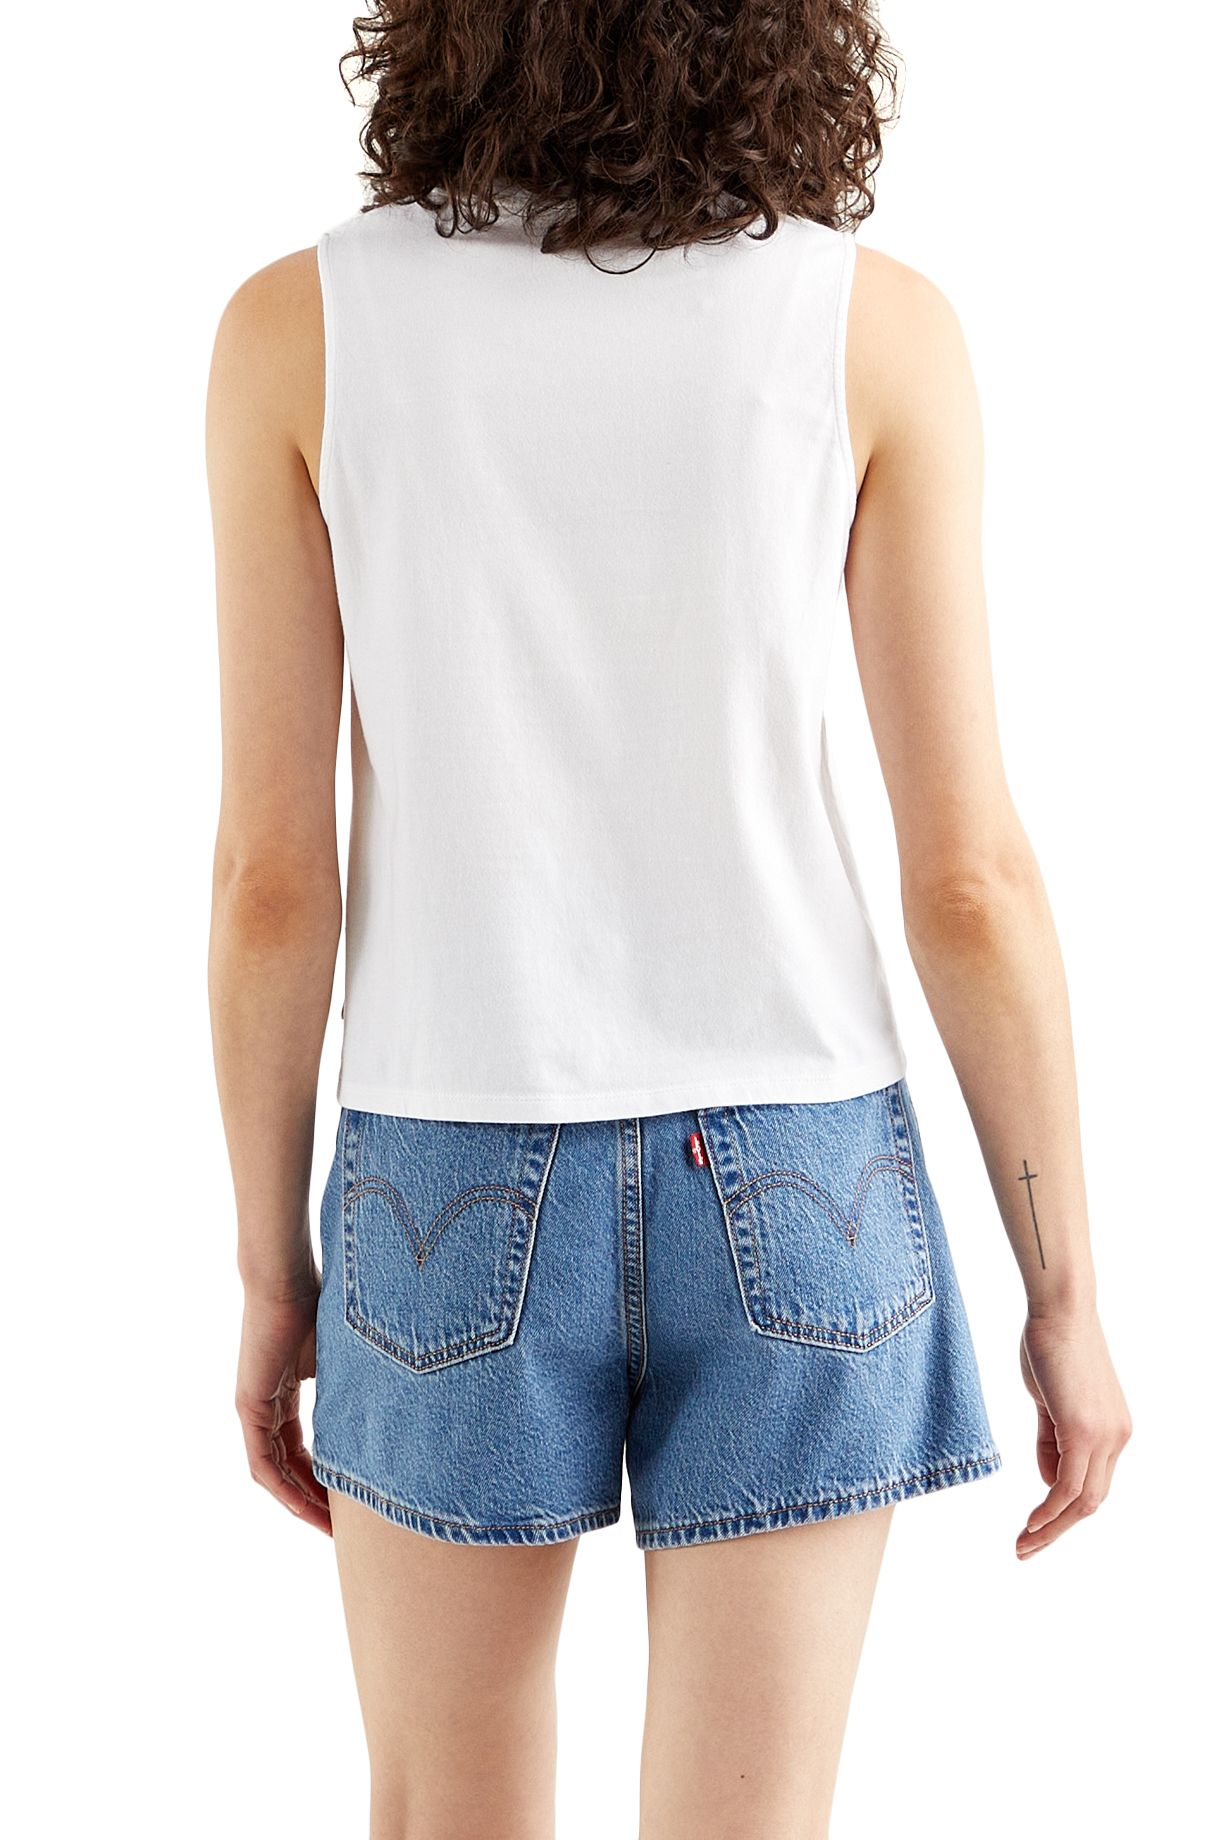 Top Levis GRAPHIC BAND TANK Batwing Band Tank White +